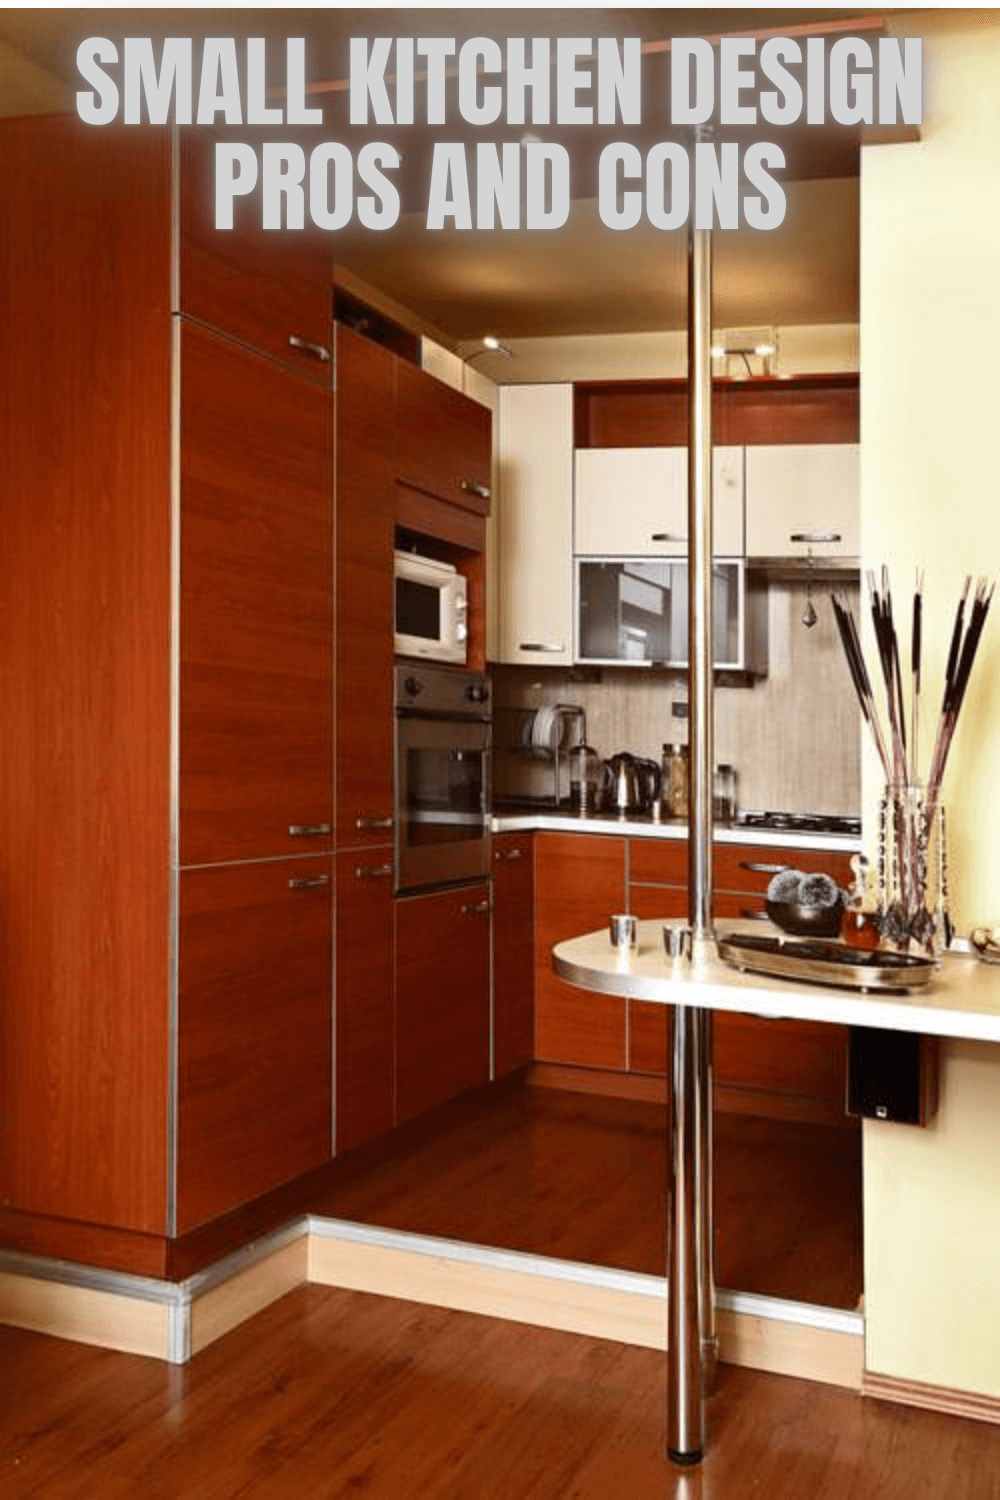 Pros And Cons Of Small Kitchen To Maximize Your Kitchen Small Kitchen Guides In 2020 Kitchen Design Small Modern Kitchen Design Best Kitchen Designs